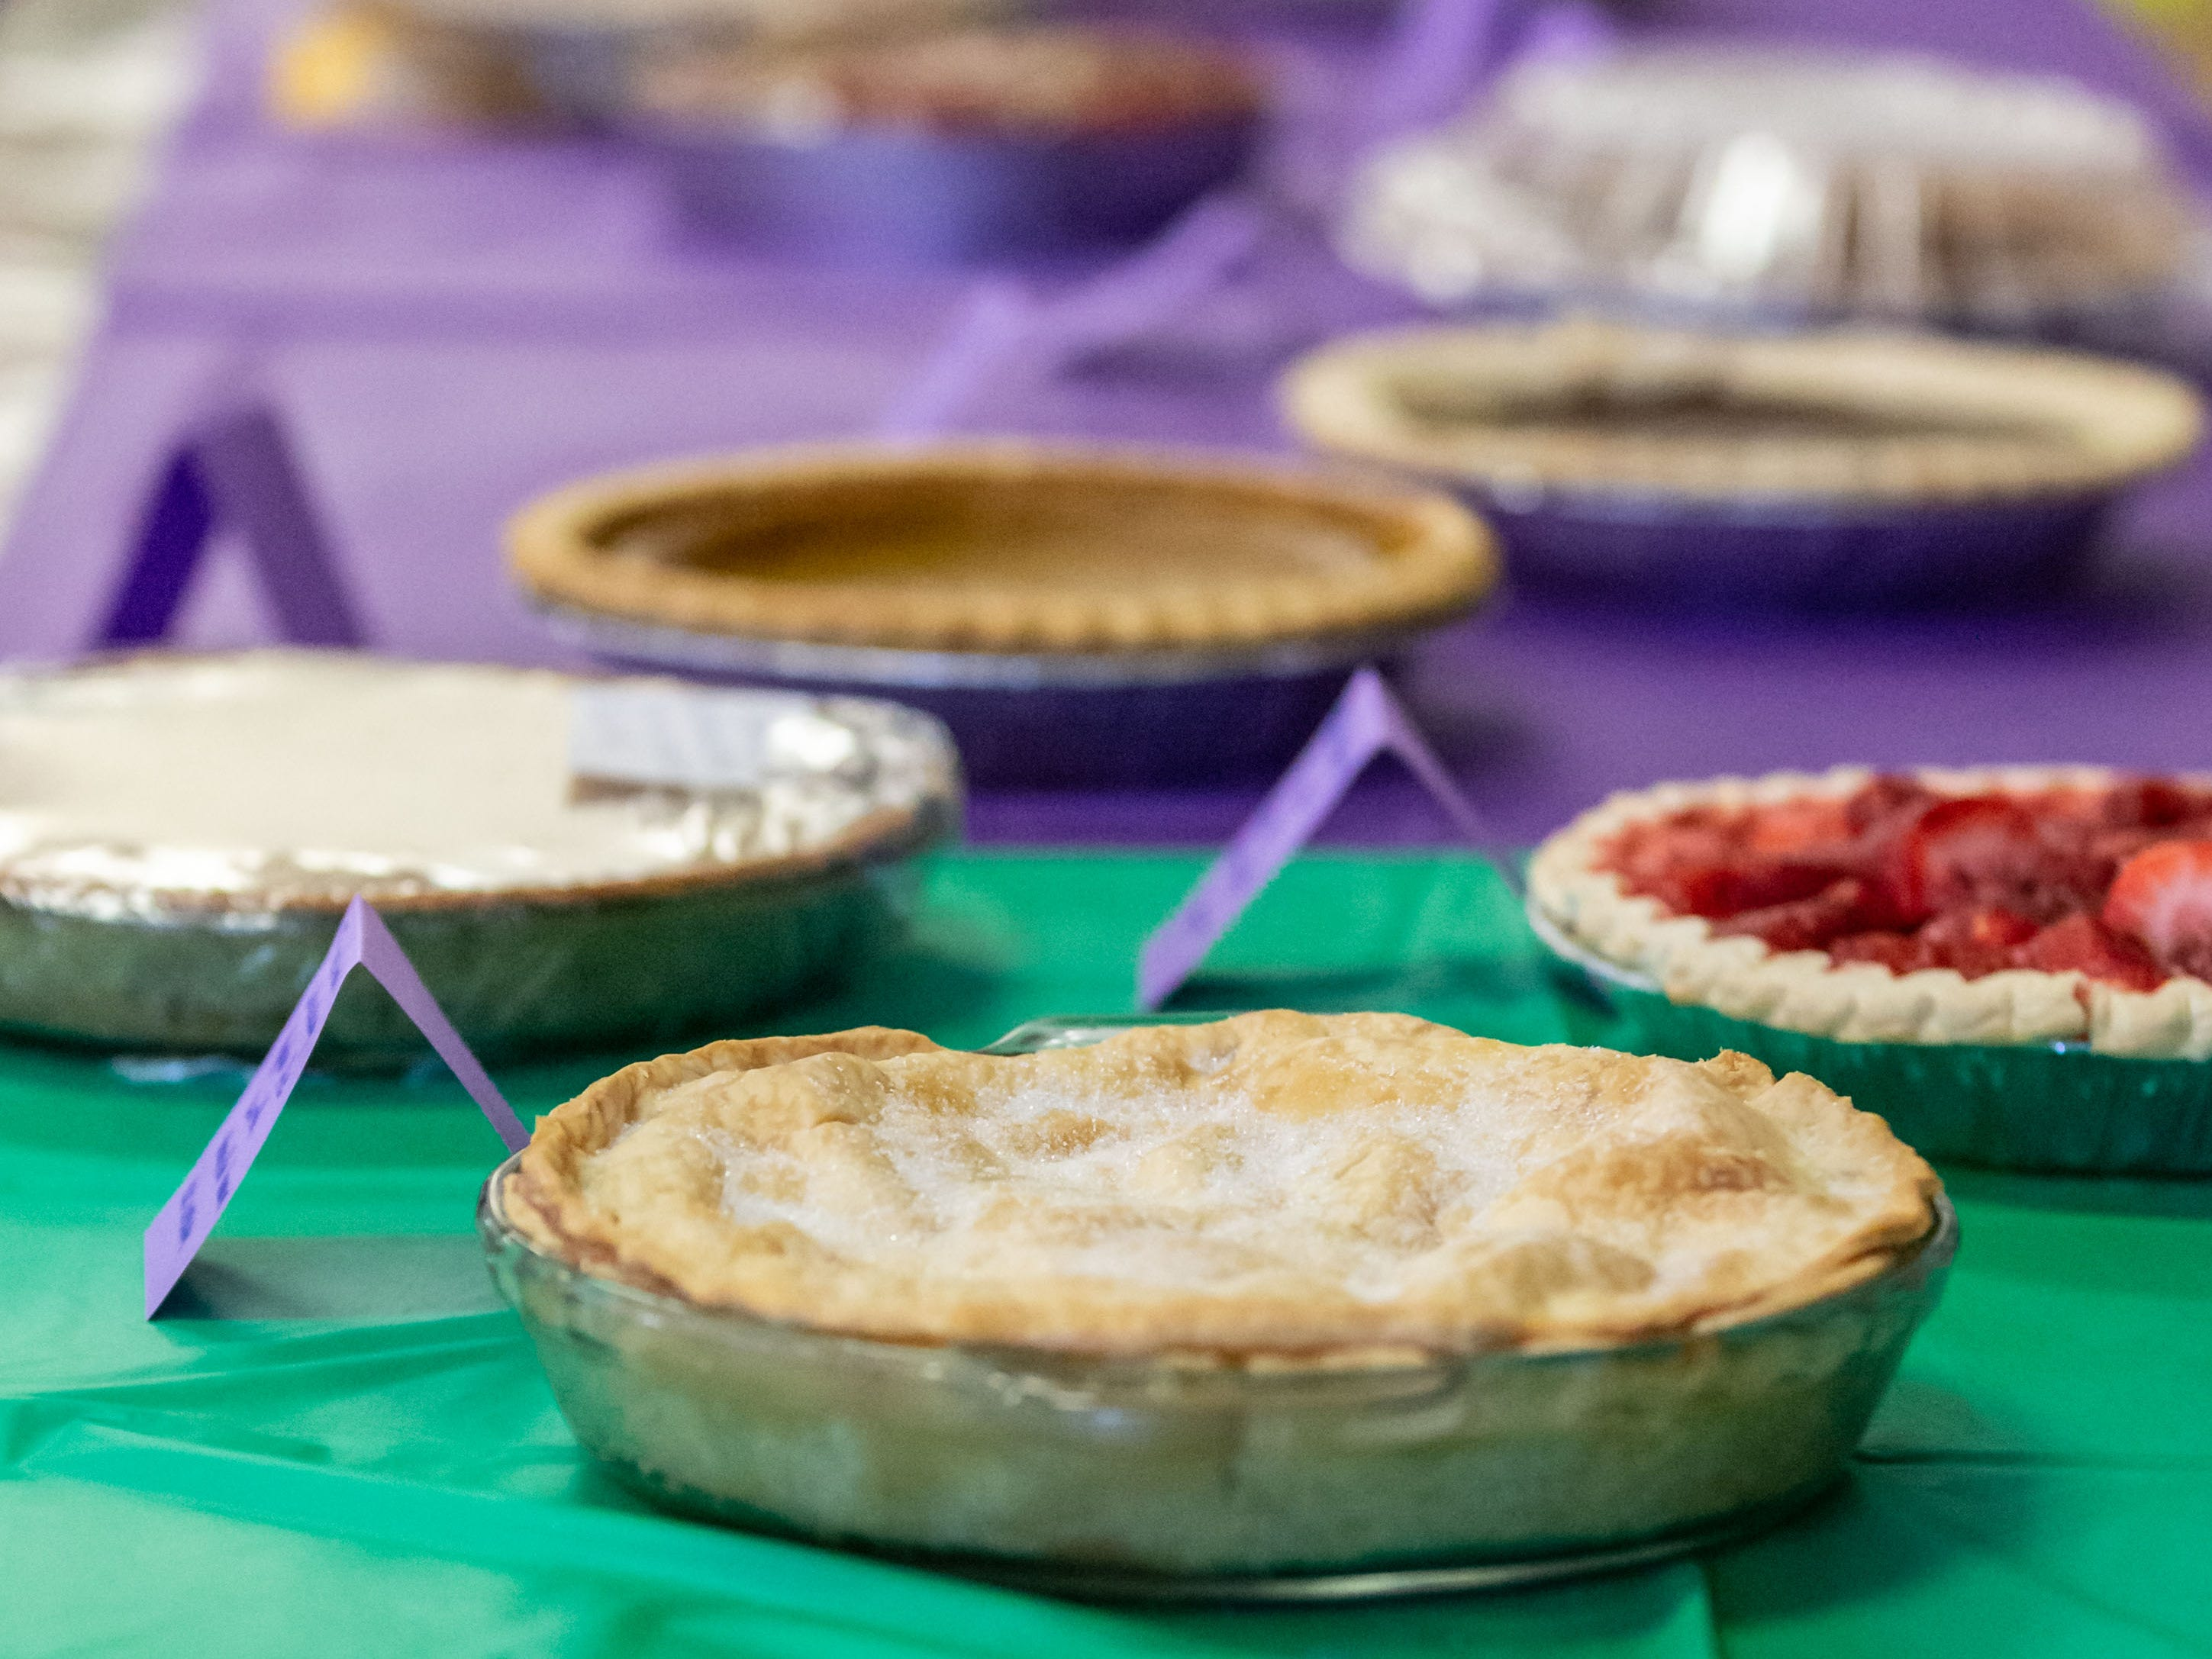 A table of home-baked pies tempt guests during the Mardi Gras Pig Roast and pie auction at Immanuel Lutheran Church in Cedarburg on Sunday, March 3, 2019. The event is a fundraiser for the church.